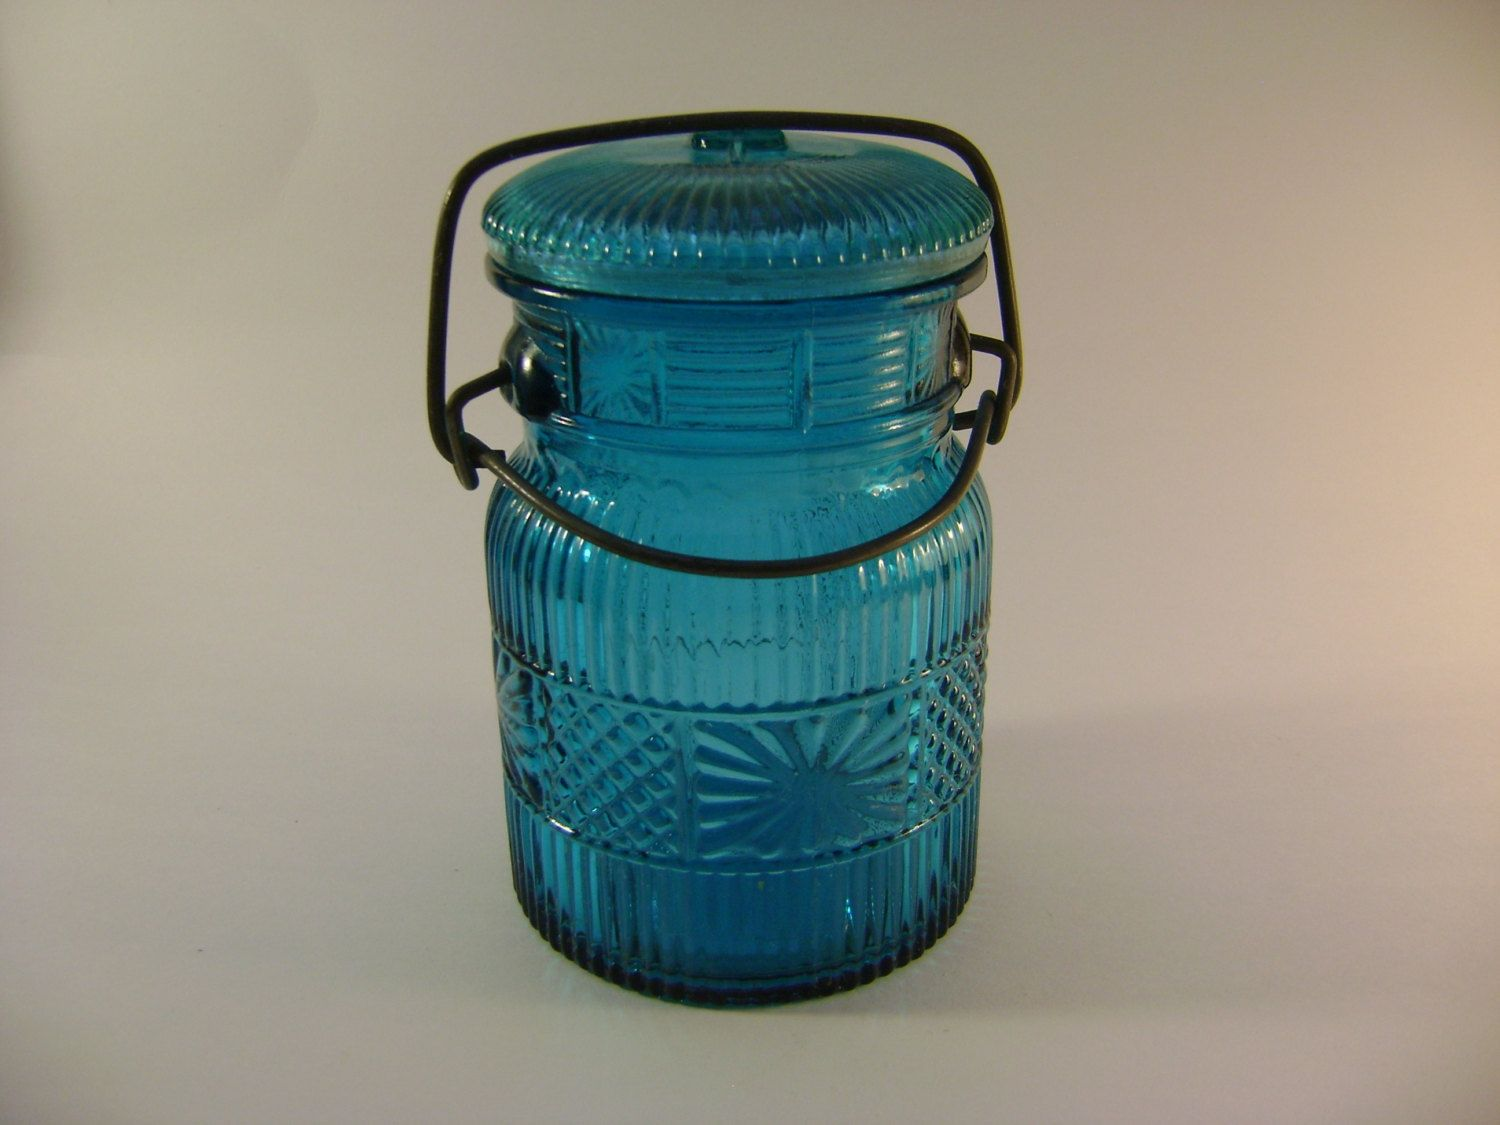 Avon Canning Jar, turquoise/teal/blue, Wire bale closure, Canning ...